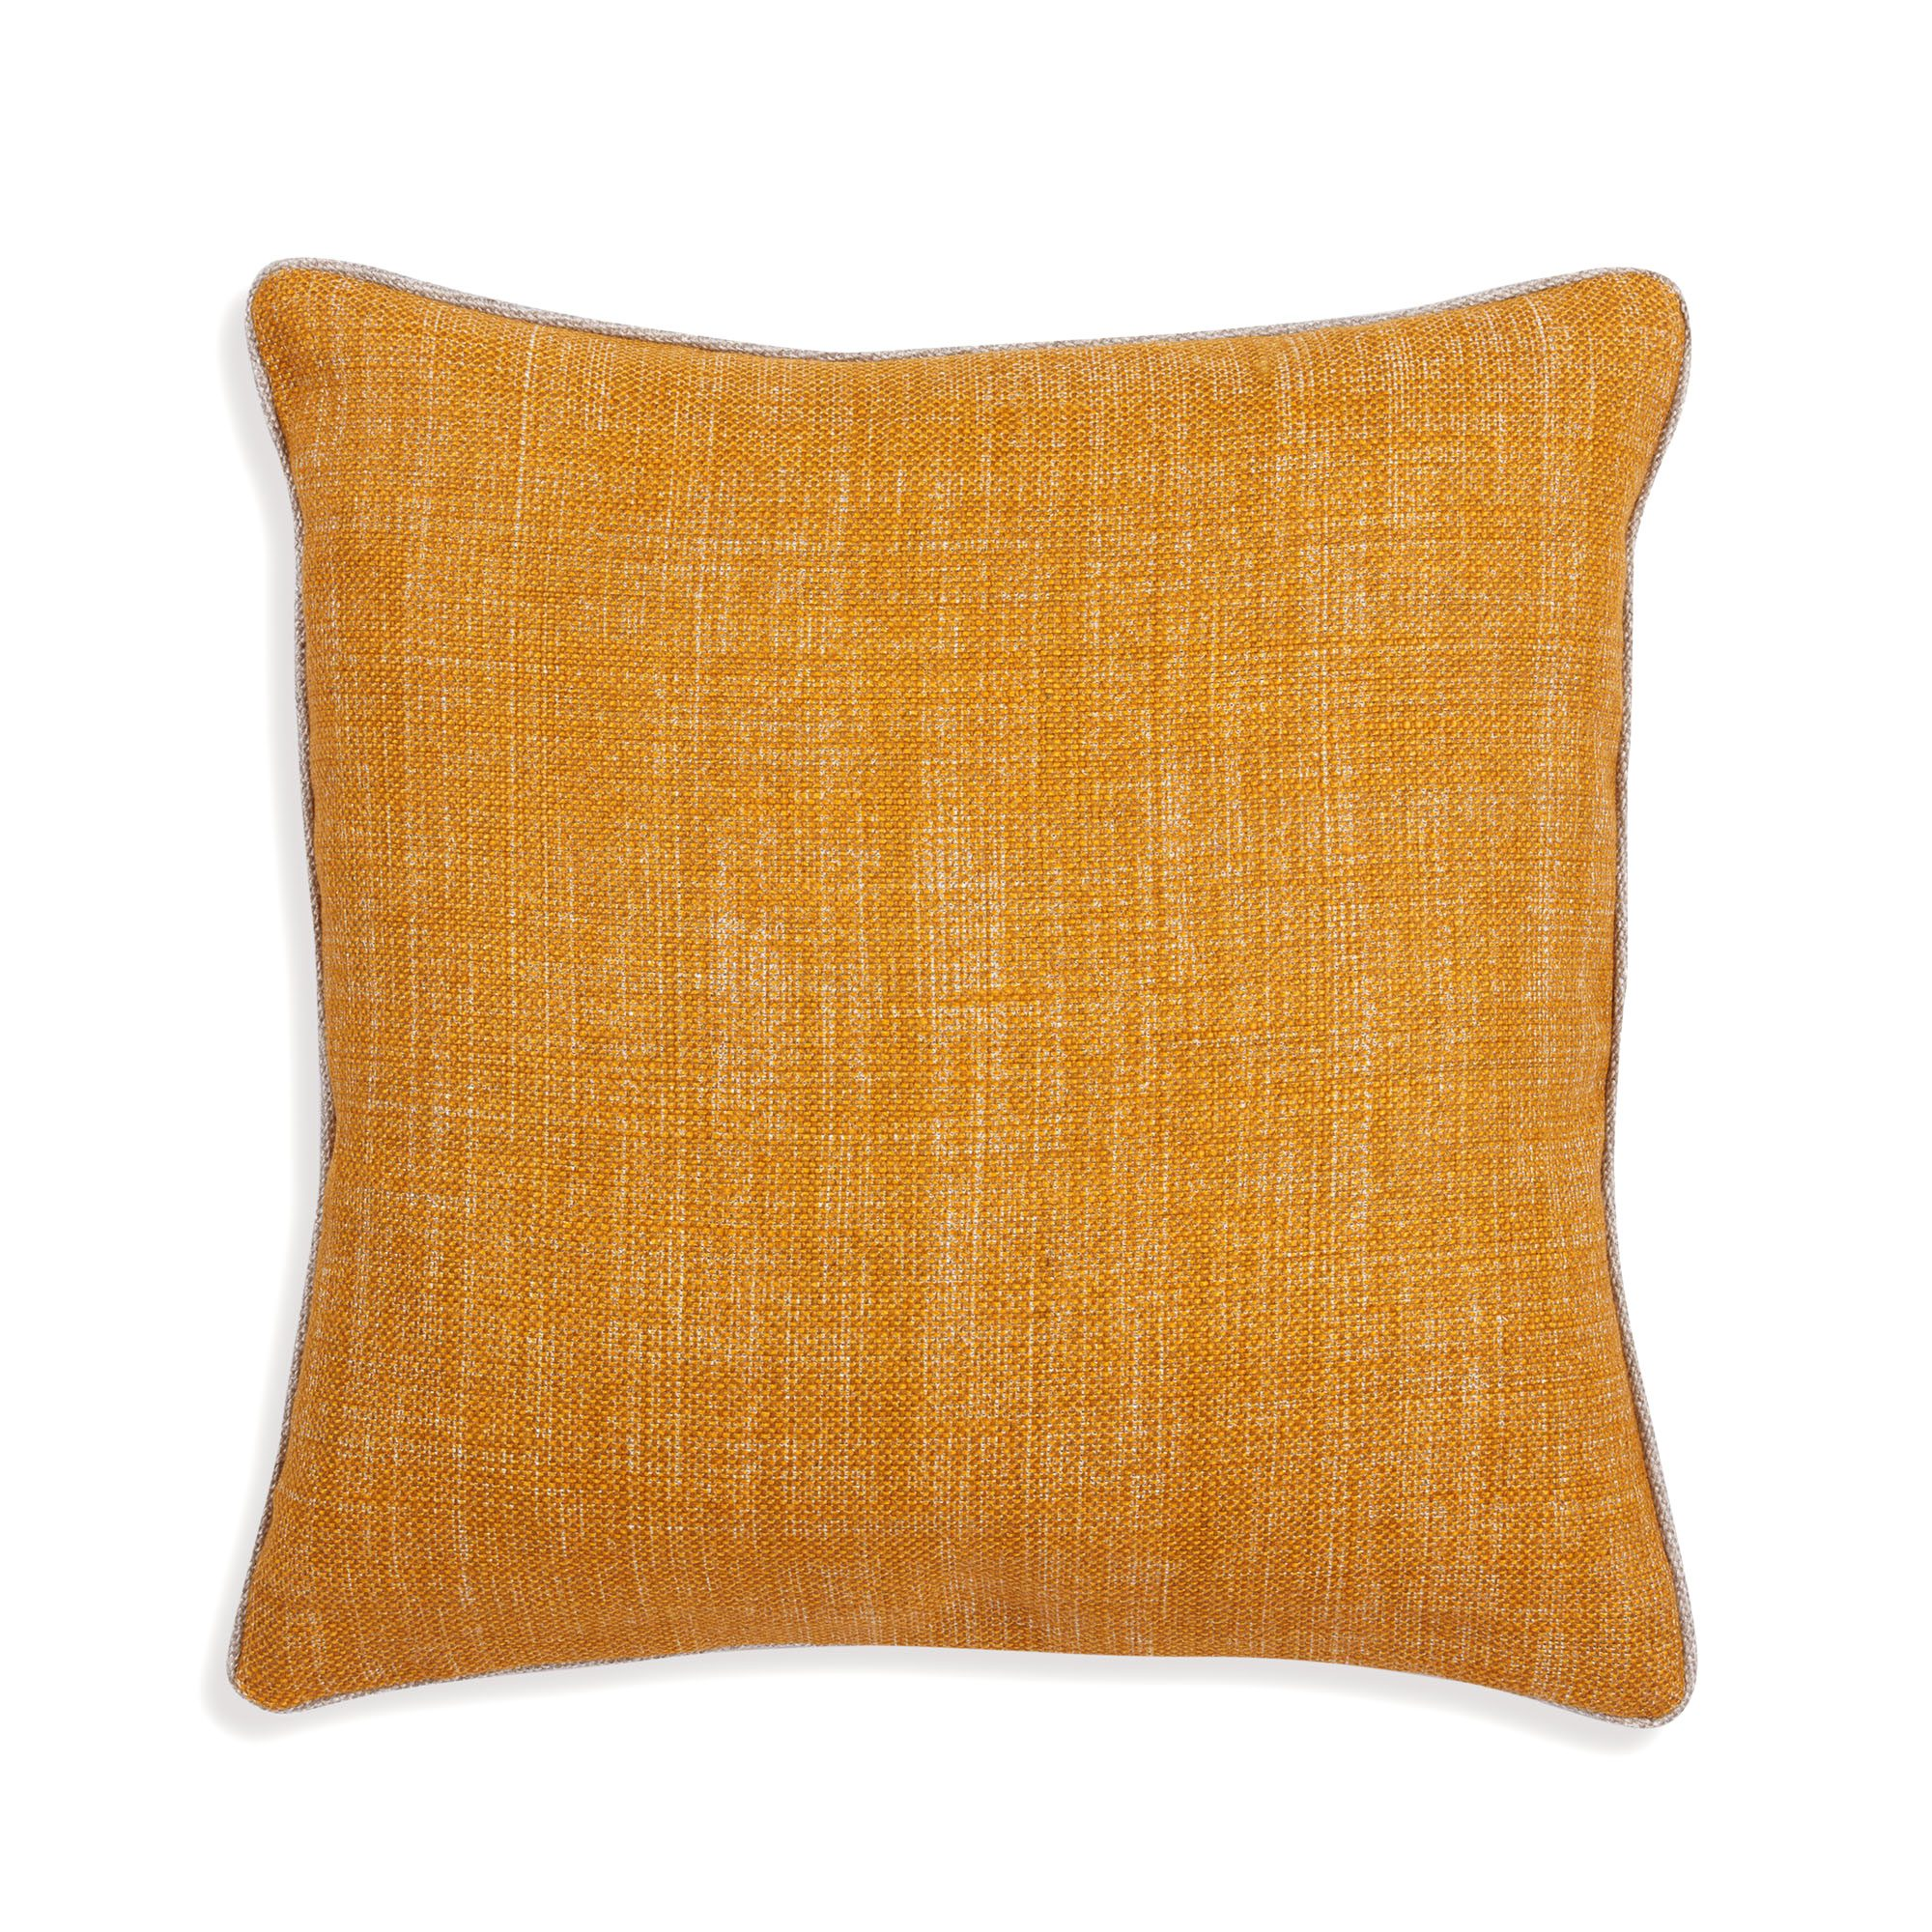 Small Square Cushion in Club Yellow